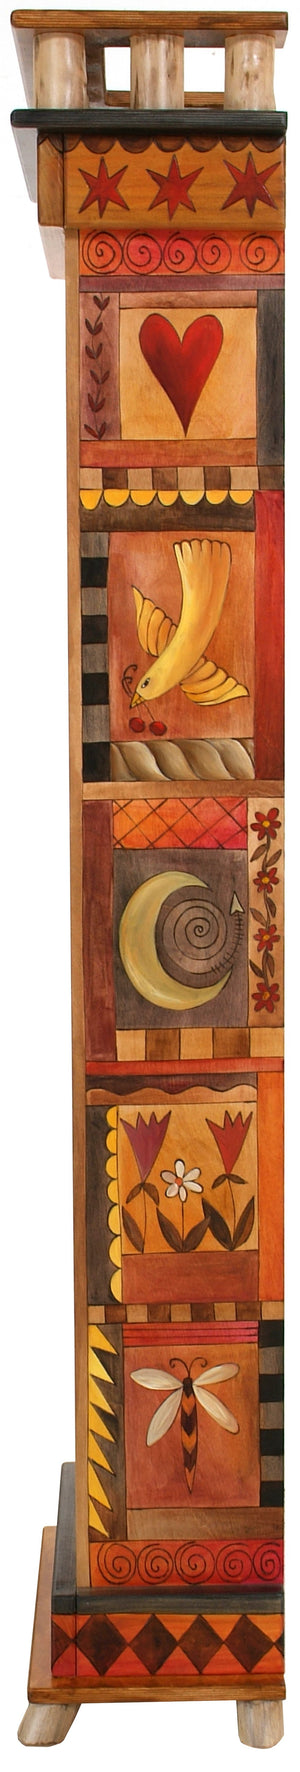 Tall Bookcase –  Warm and elegant folk art bookcase with block icon motifs